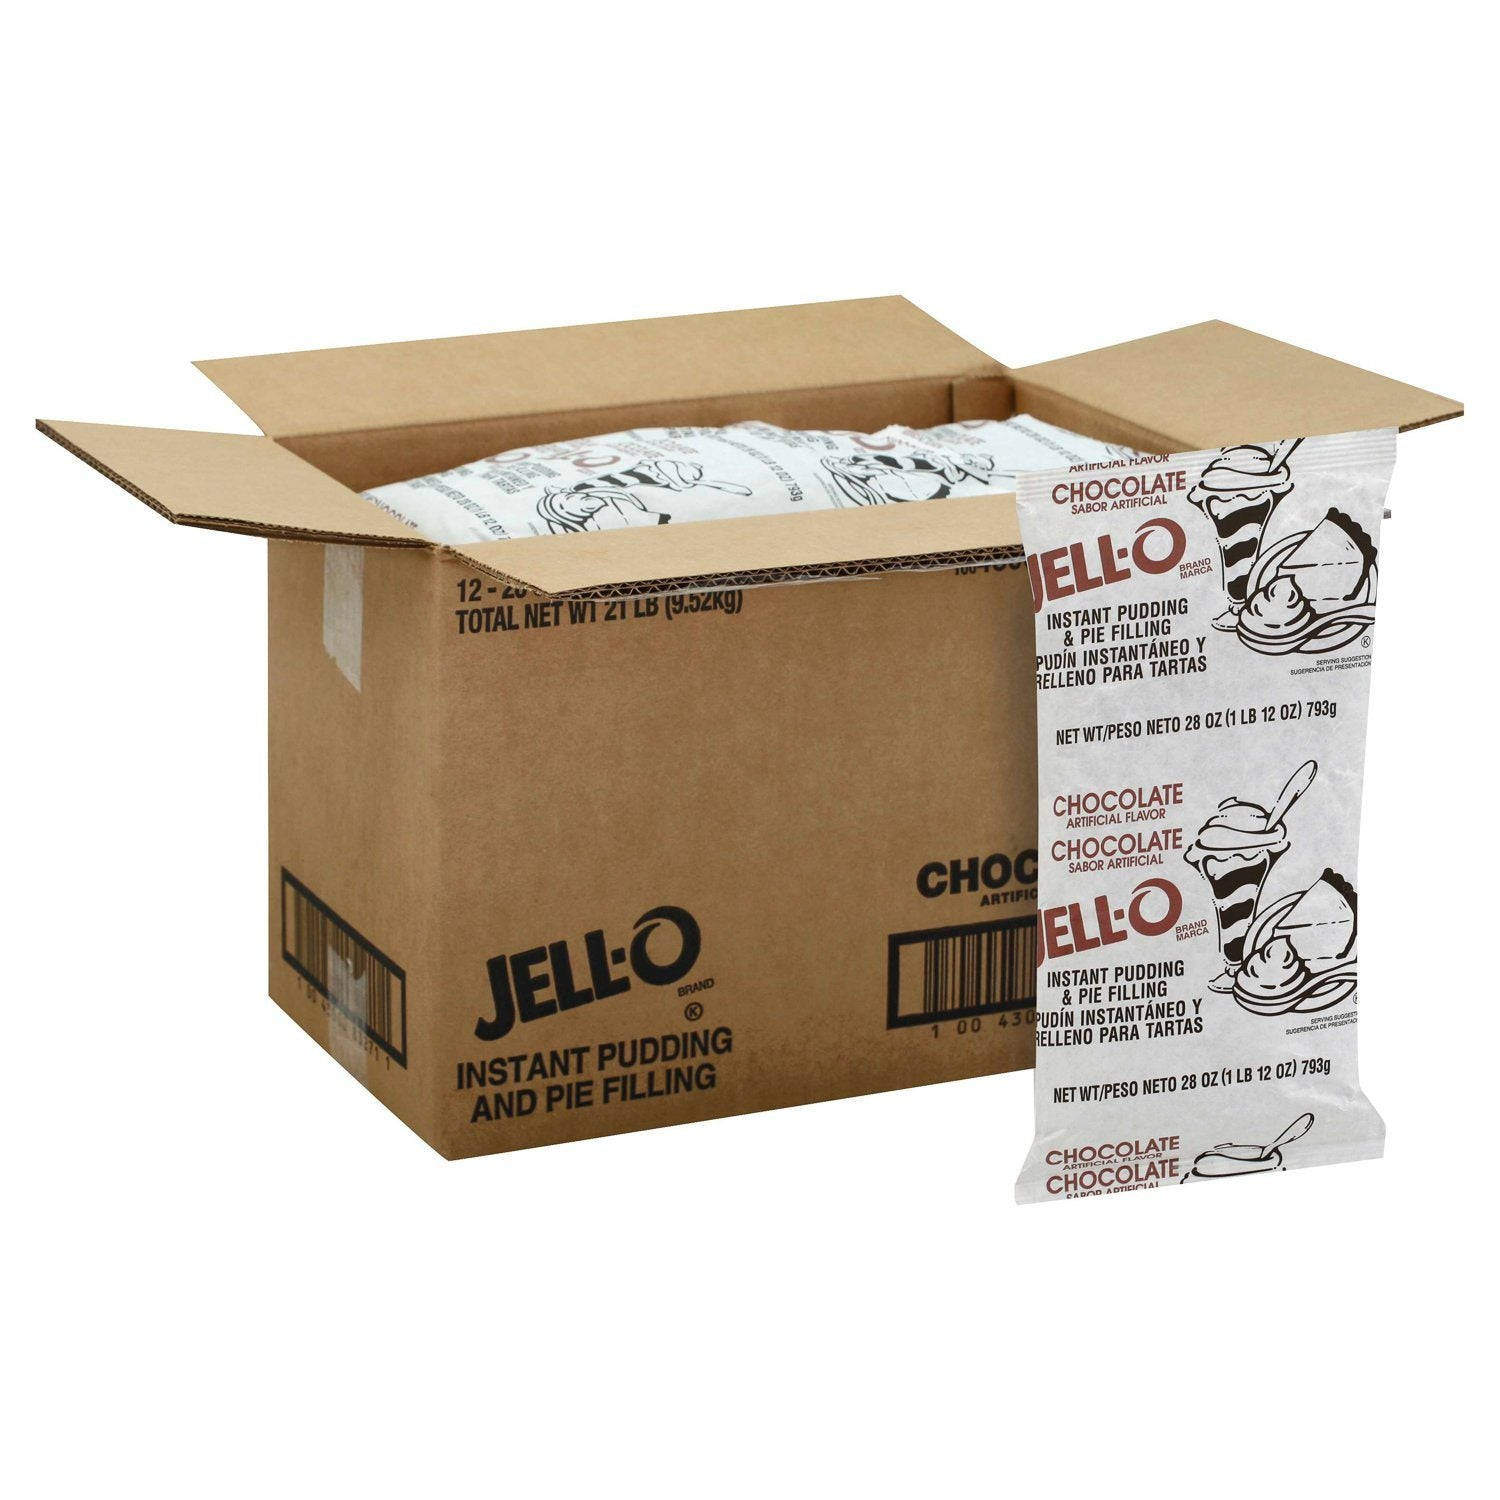 Jell-O Instant Pudding & Pie Filling Mixes Jell-O Chocolate 1.75 lb-12 Count